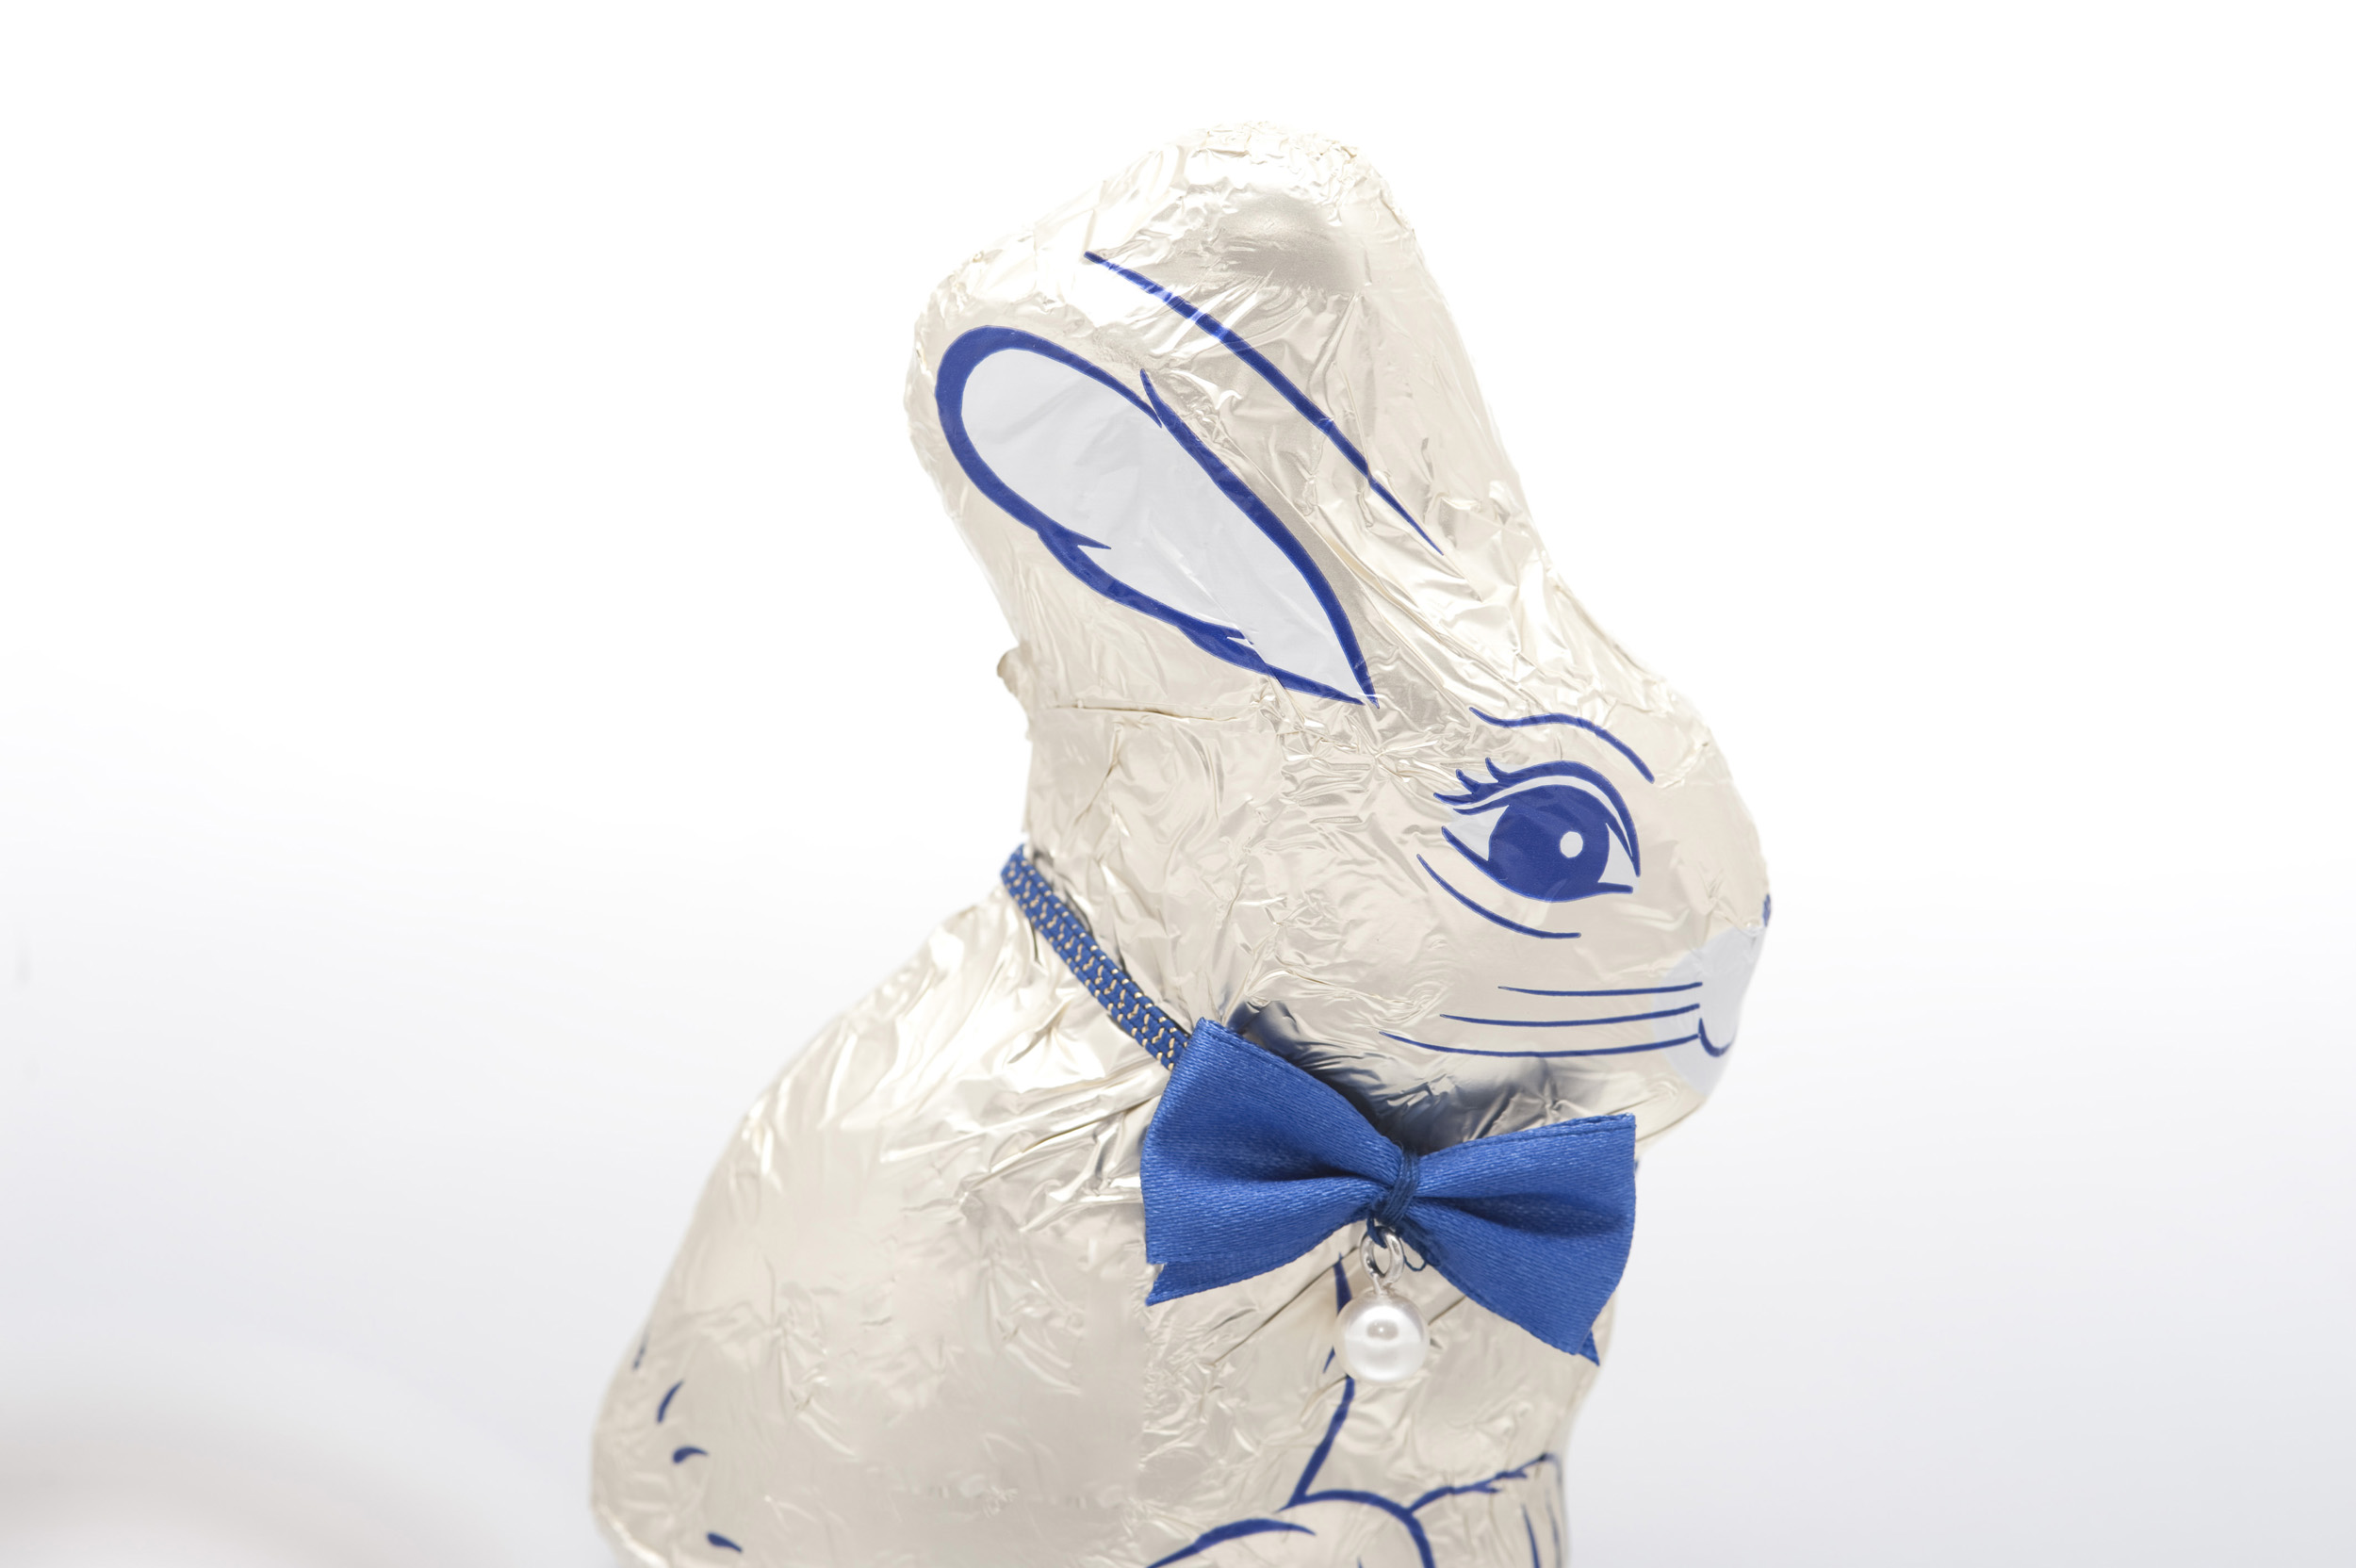 chocolate_easter_rabbit.jpg - Chocolate Easter Rabbit still in its decorative foil wrapping with a blue bowtie